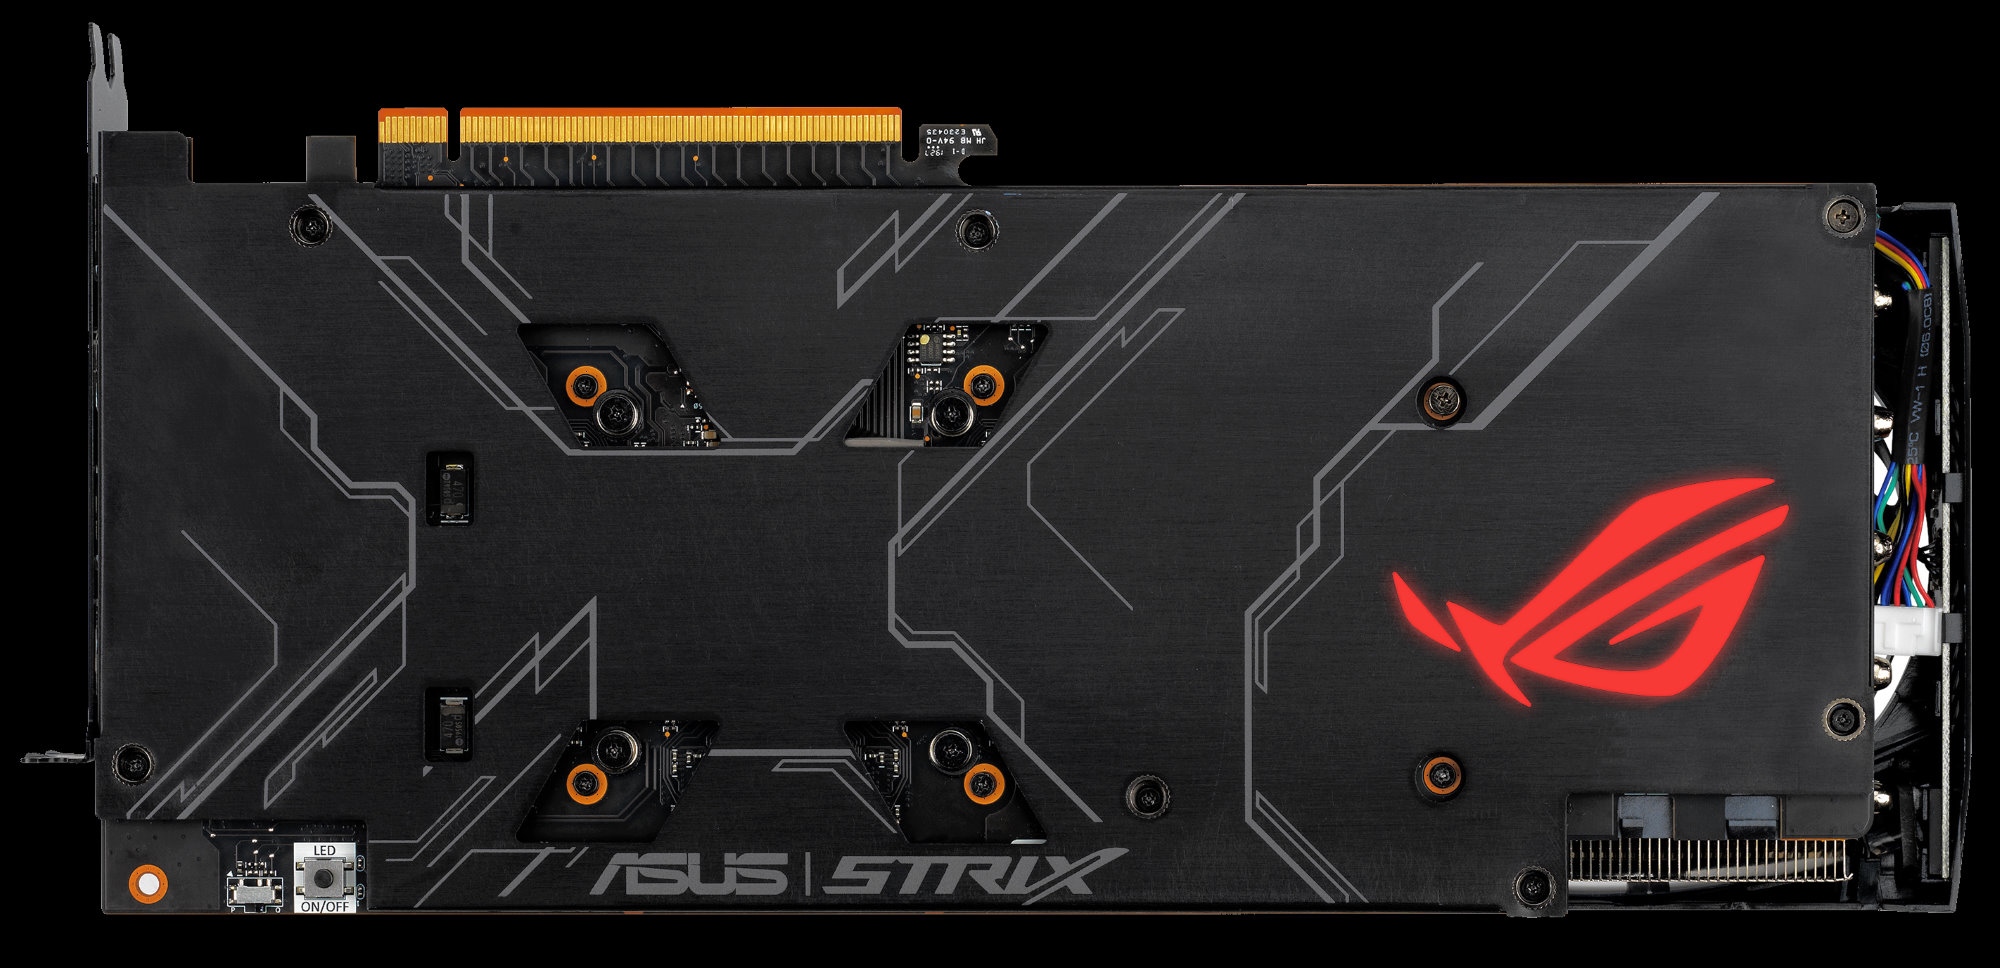 Asus ROG Strix RX 5700 backplate